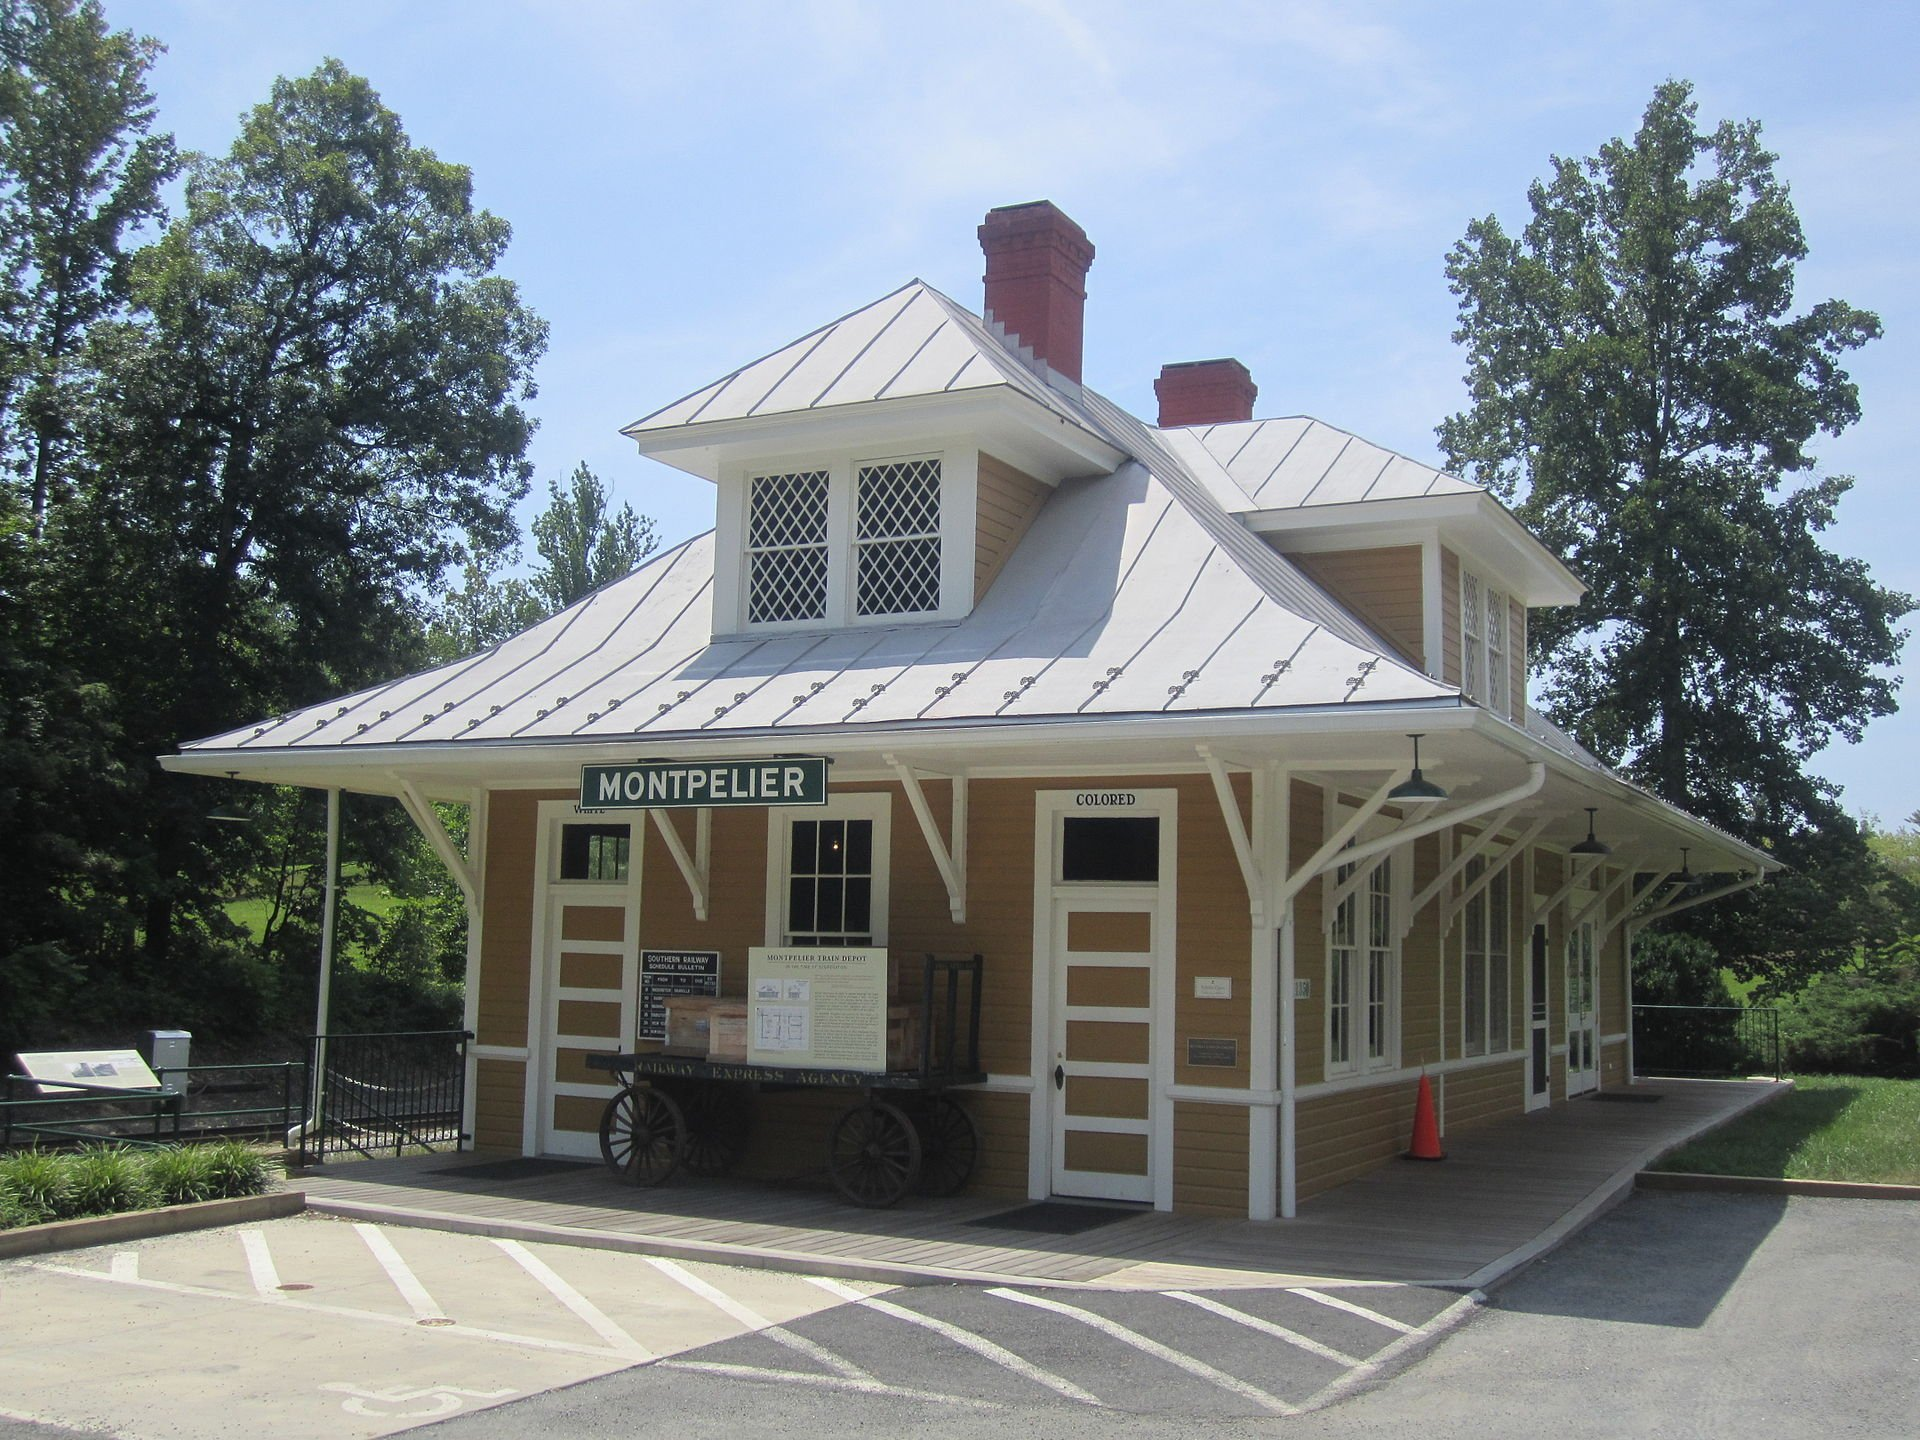 A historic train depot, restored to its 1910s appearance, interprets the history of segregation and Jim Crow in Virginia. Wikimedia Commons.